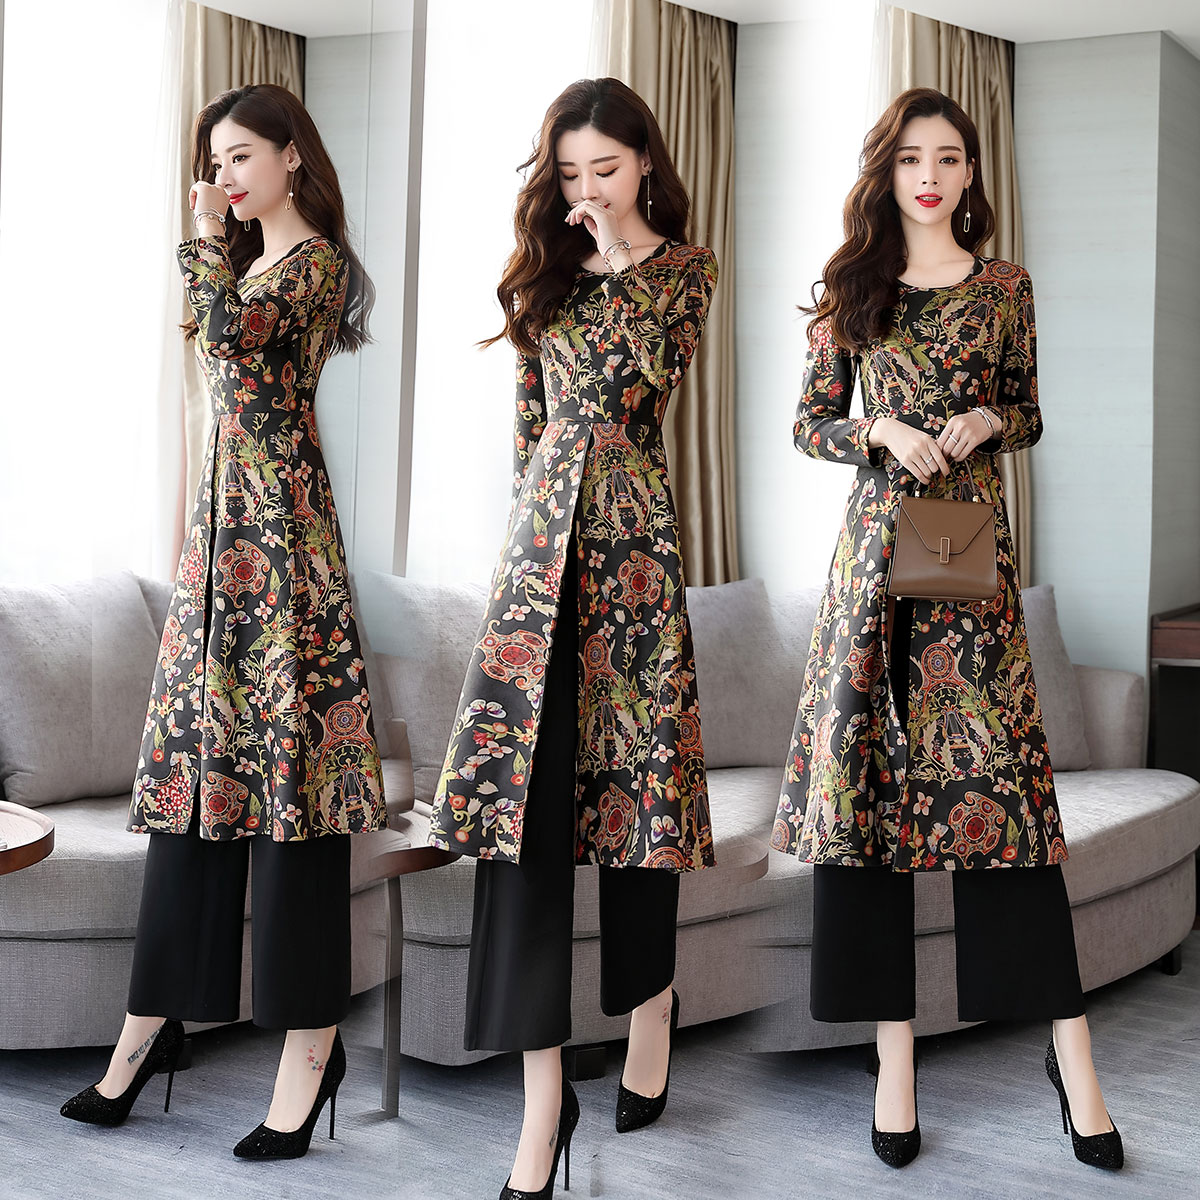 Chinese Style Printed Two-piece Dress Women 2018 New Autumn Temperament Retro National Style Pants Suit